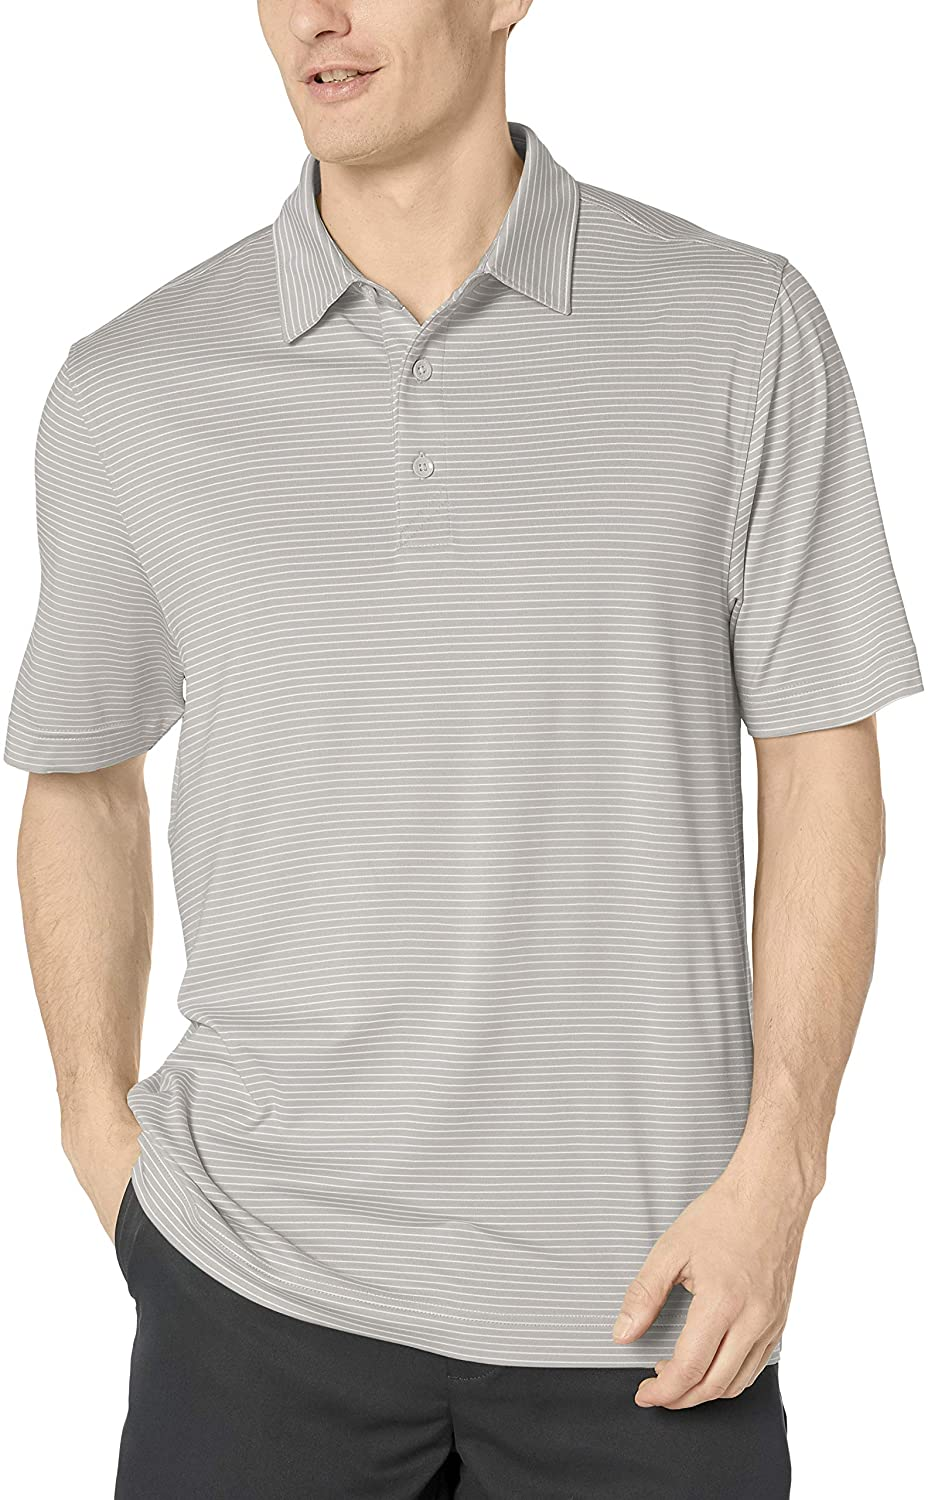 Cutter & Buck Men's Moisture Wicking UPF Drytec Forge Pencil Stripe Polo Shirt